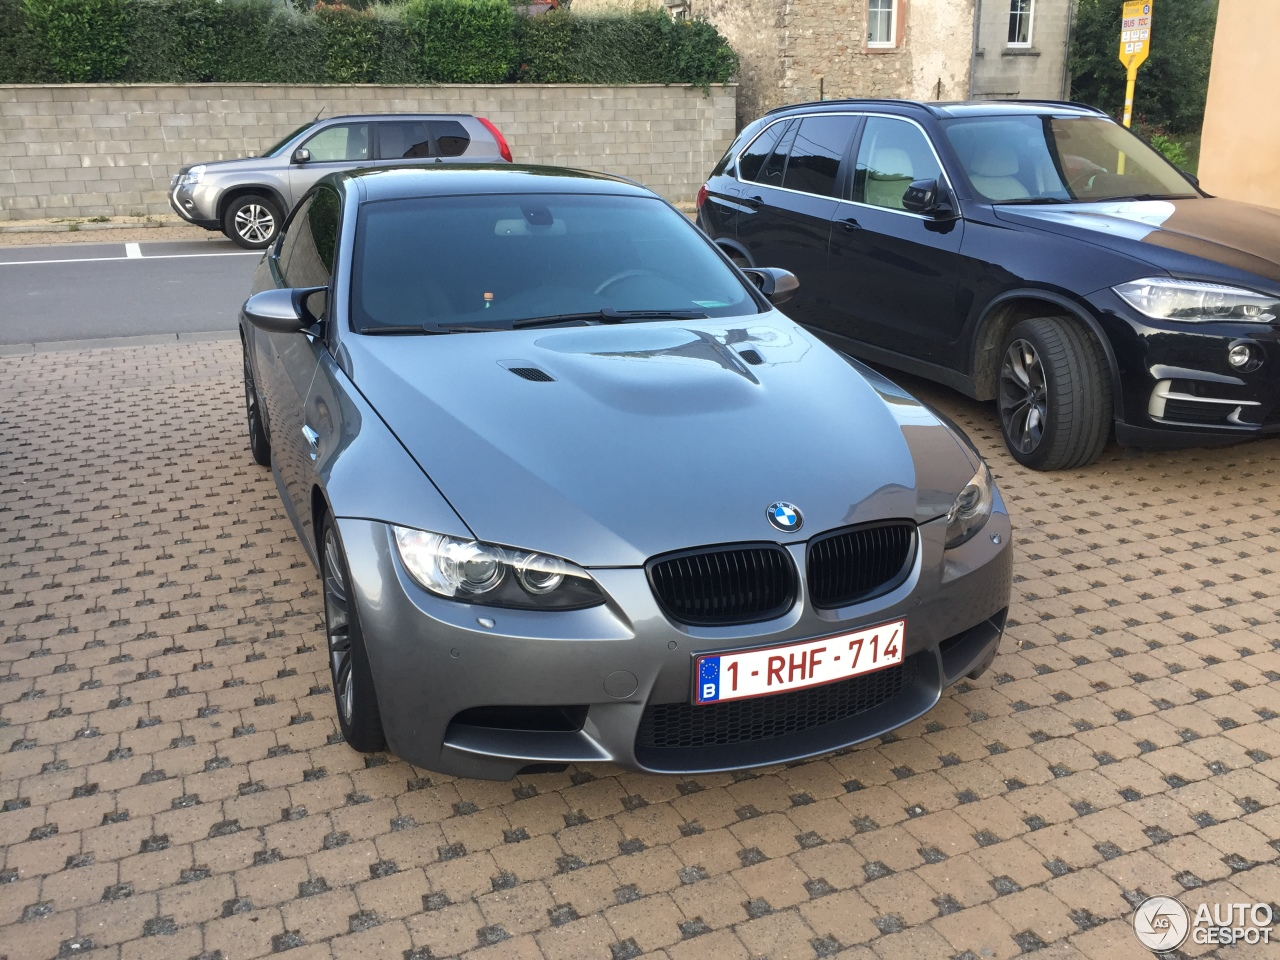 bmw m3 e92 coup 12 janvier 2018 autogespot. Black Bedroom Furniture Sets. Home Design Ideas